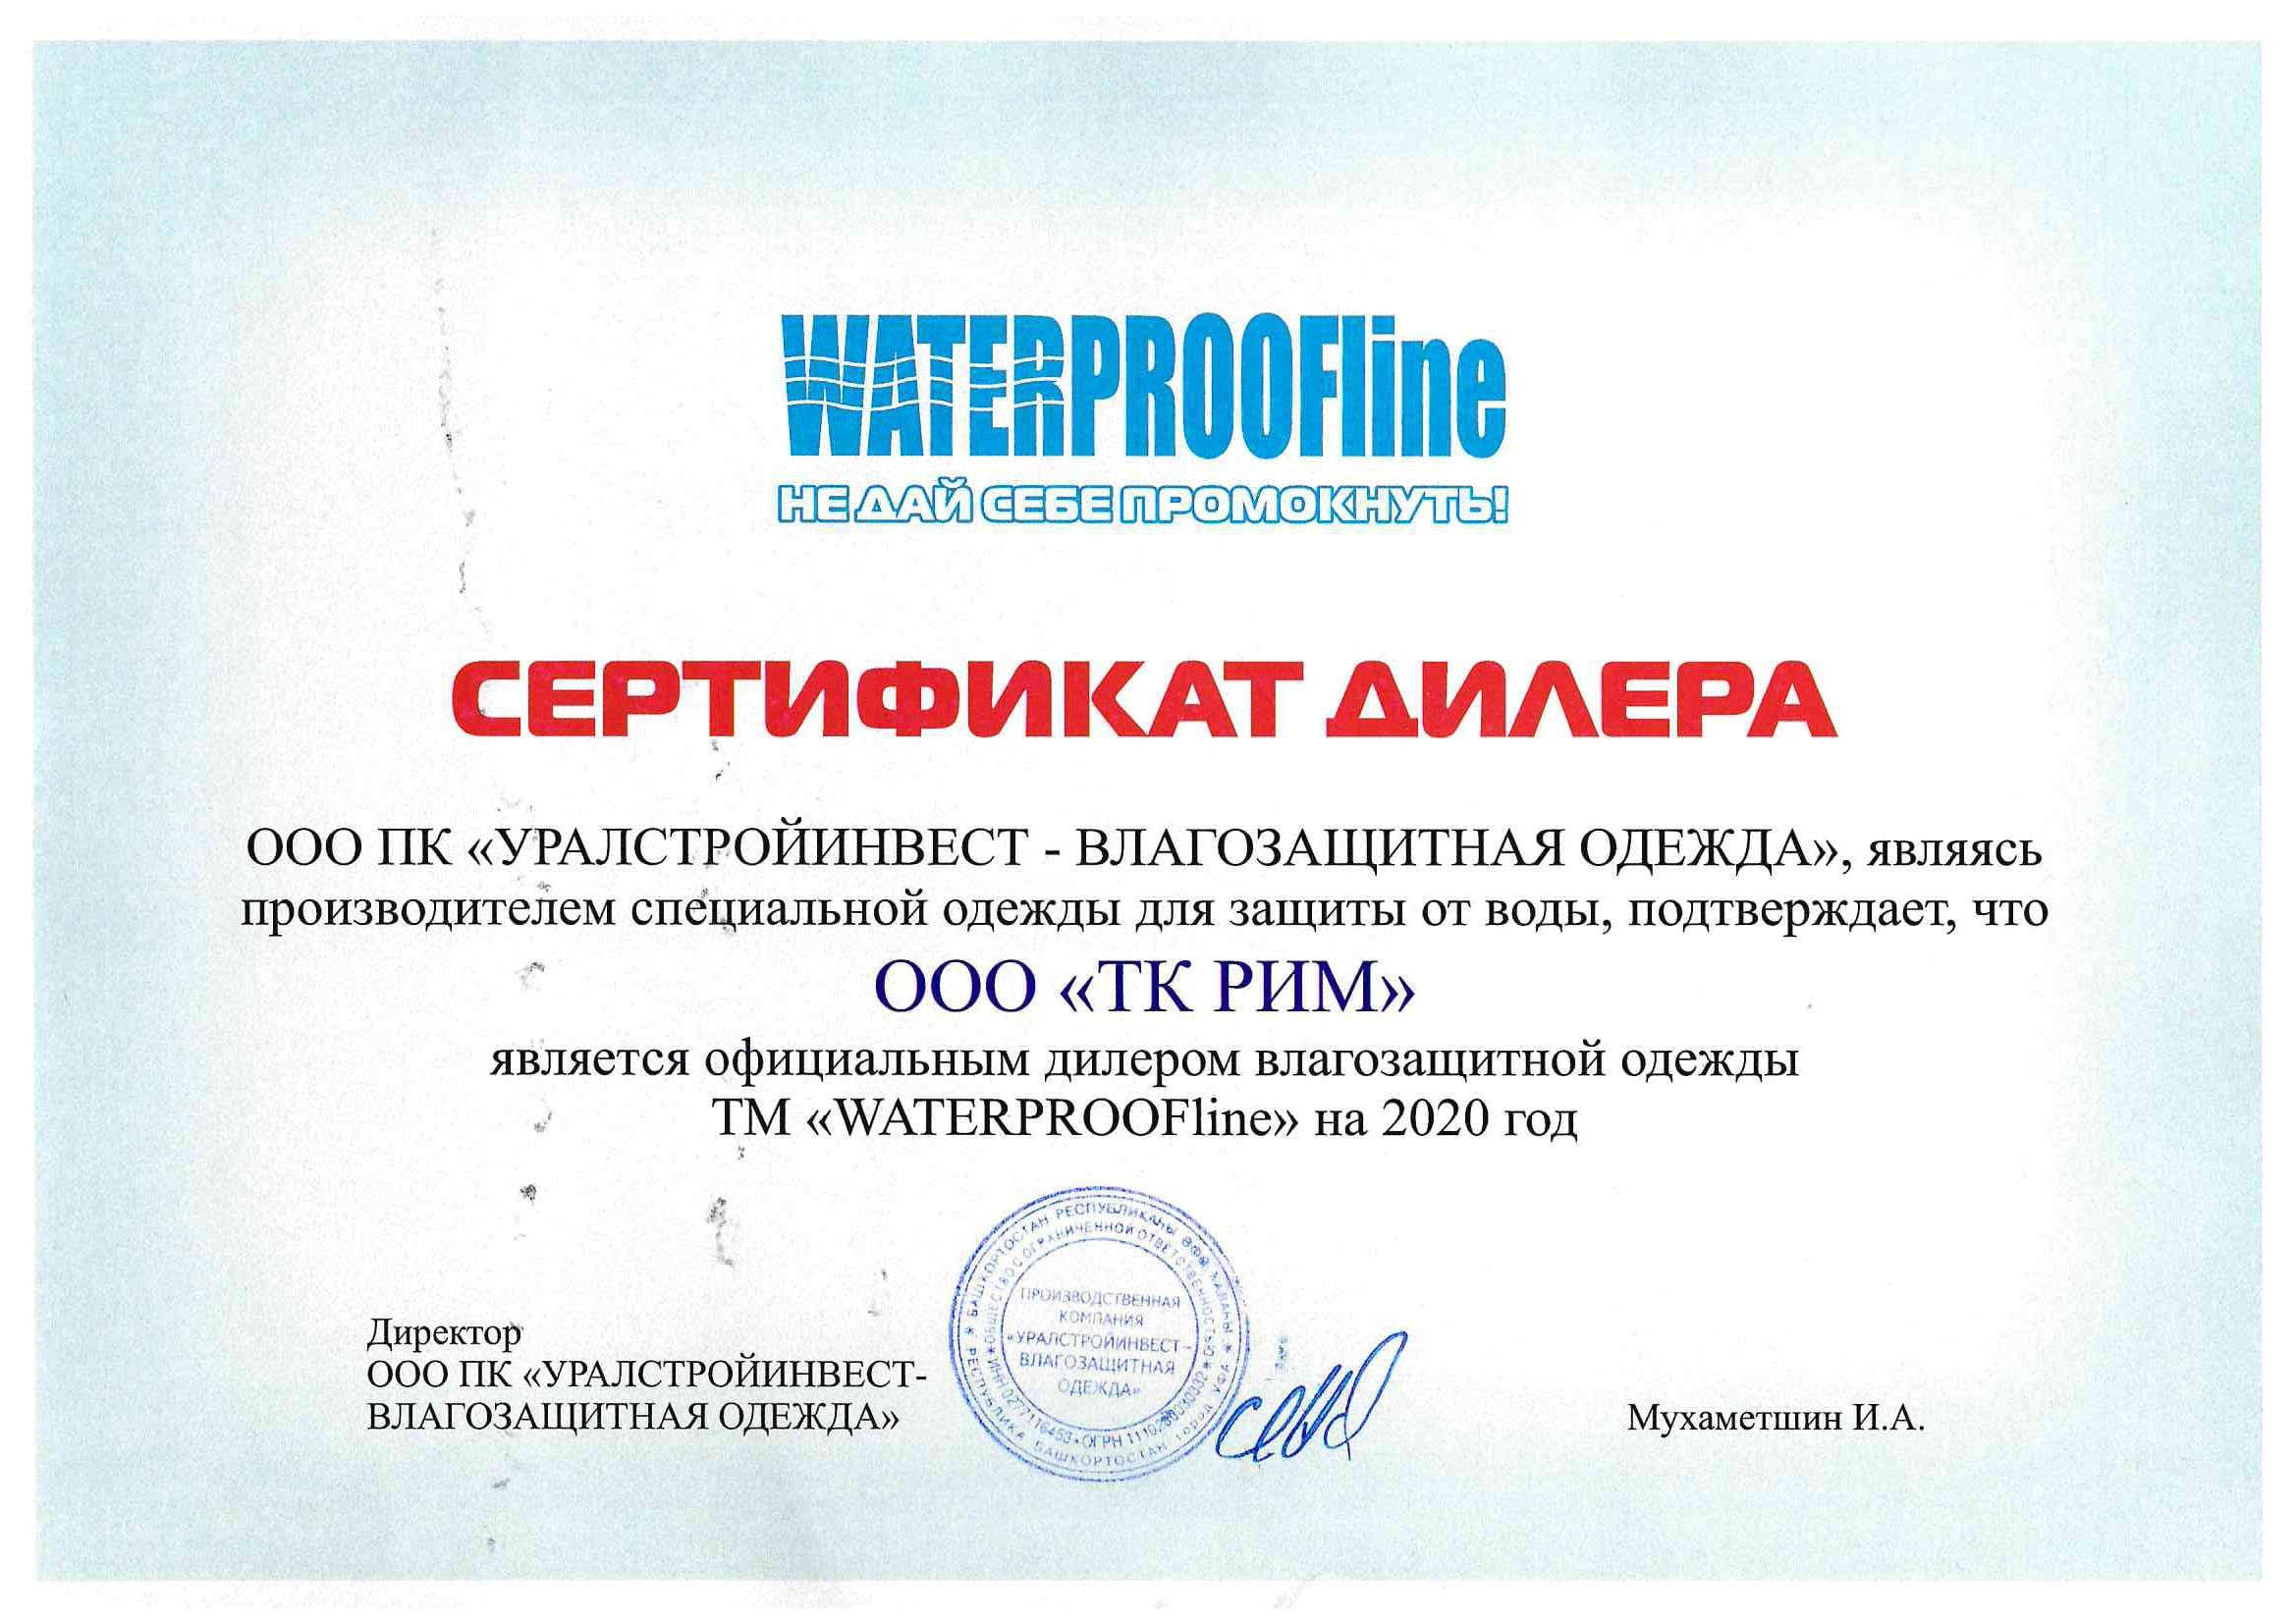 Сертификат WATERPROOFline на 2018 ООО ТК РИМ